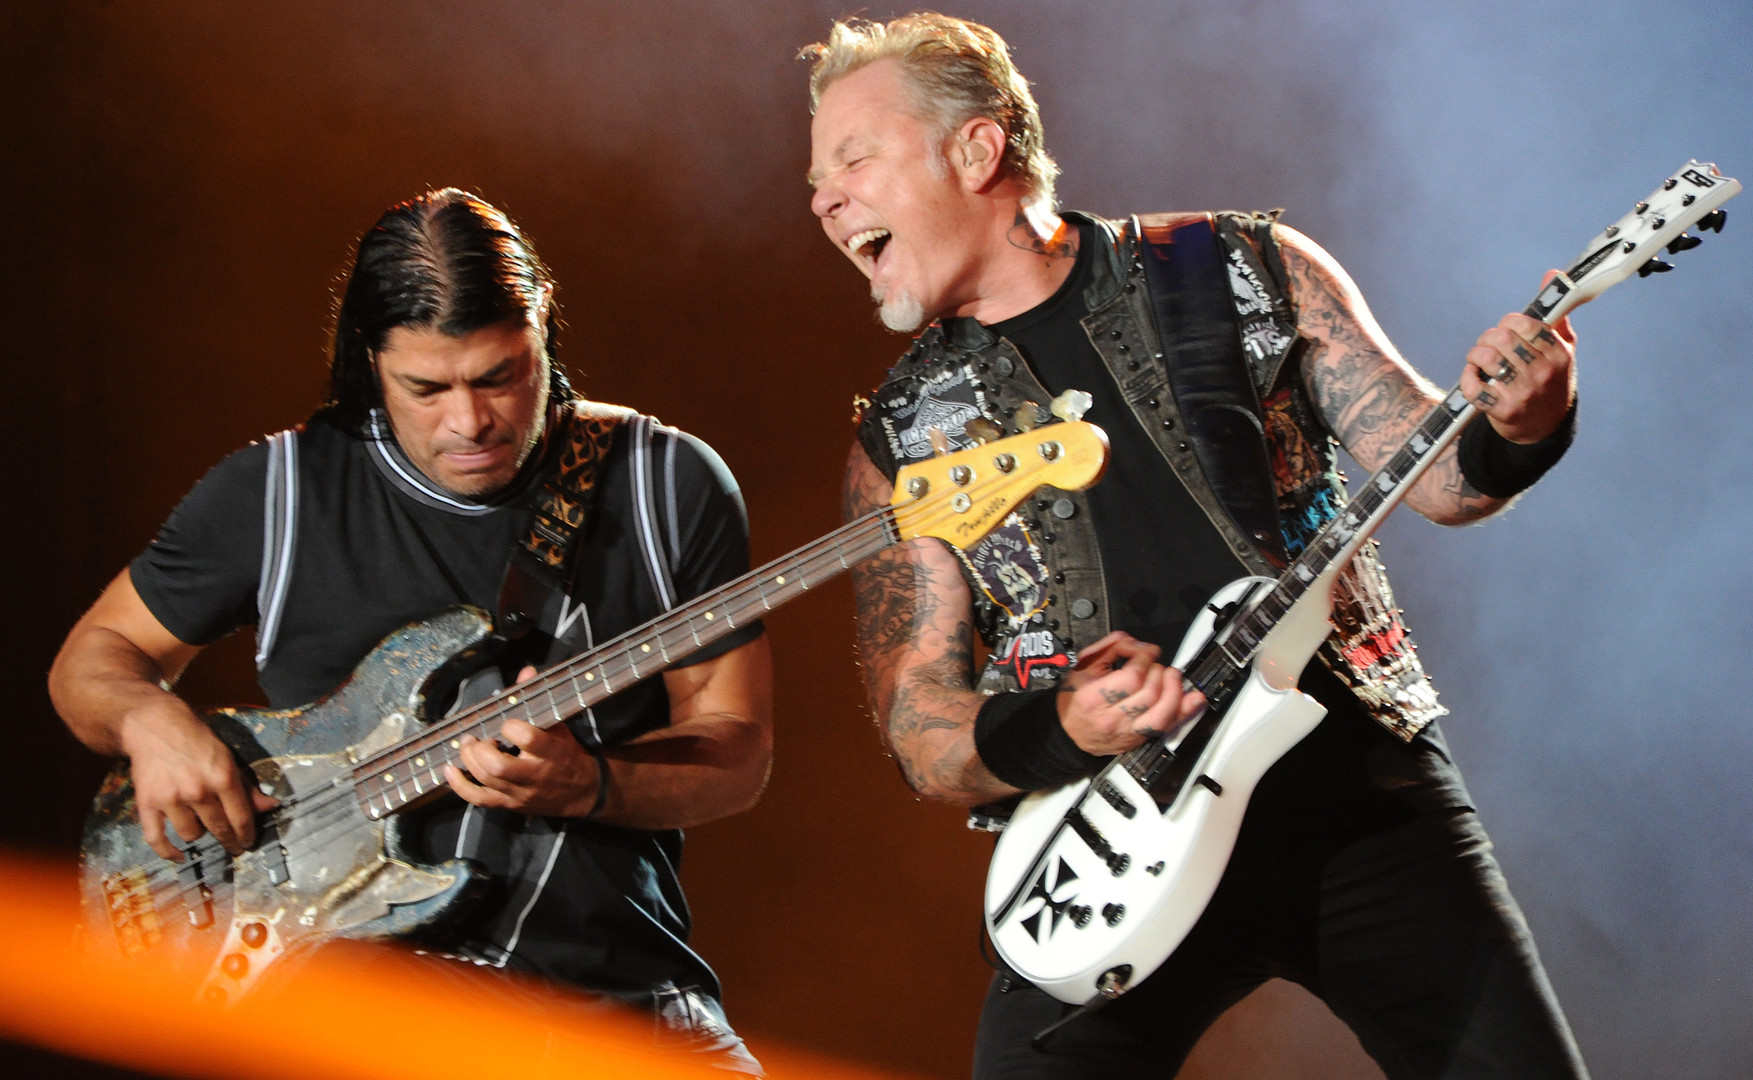 Les Red Hot Chili Peppers pris pour Metallica par la douane biélorusse (IMAGES)